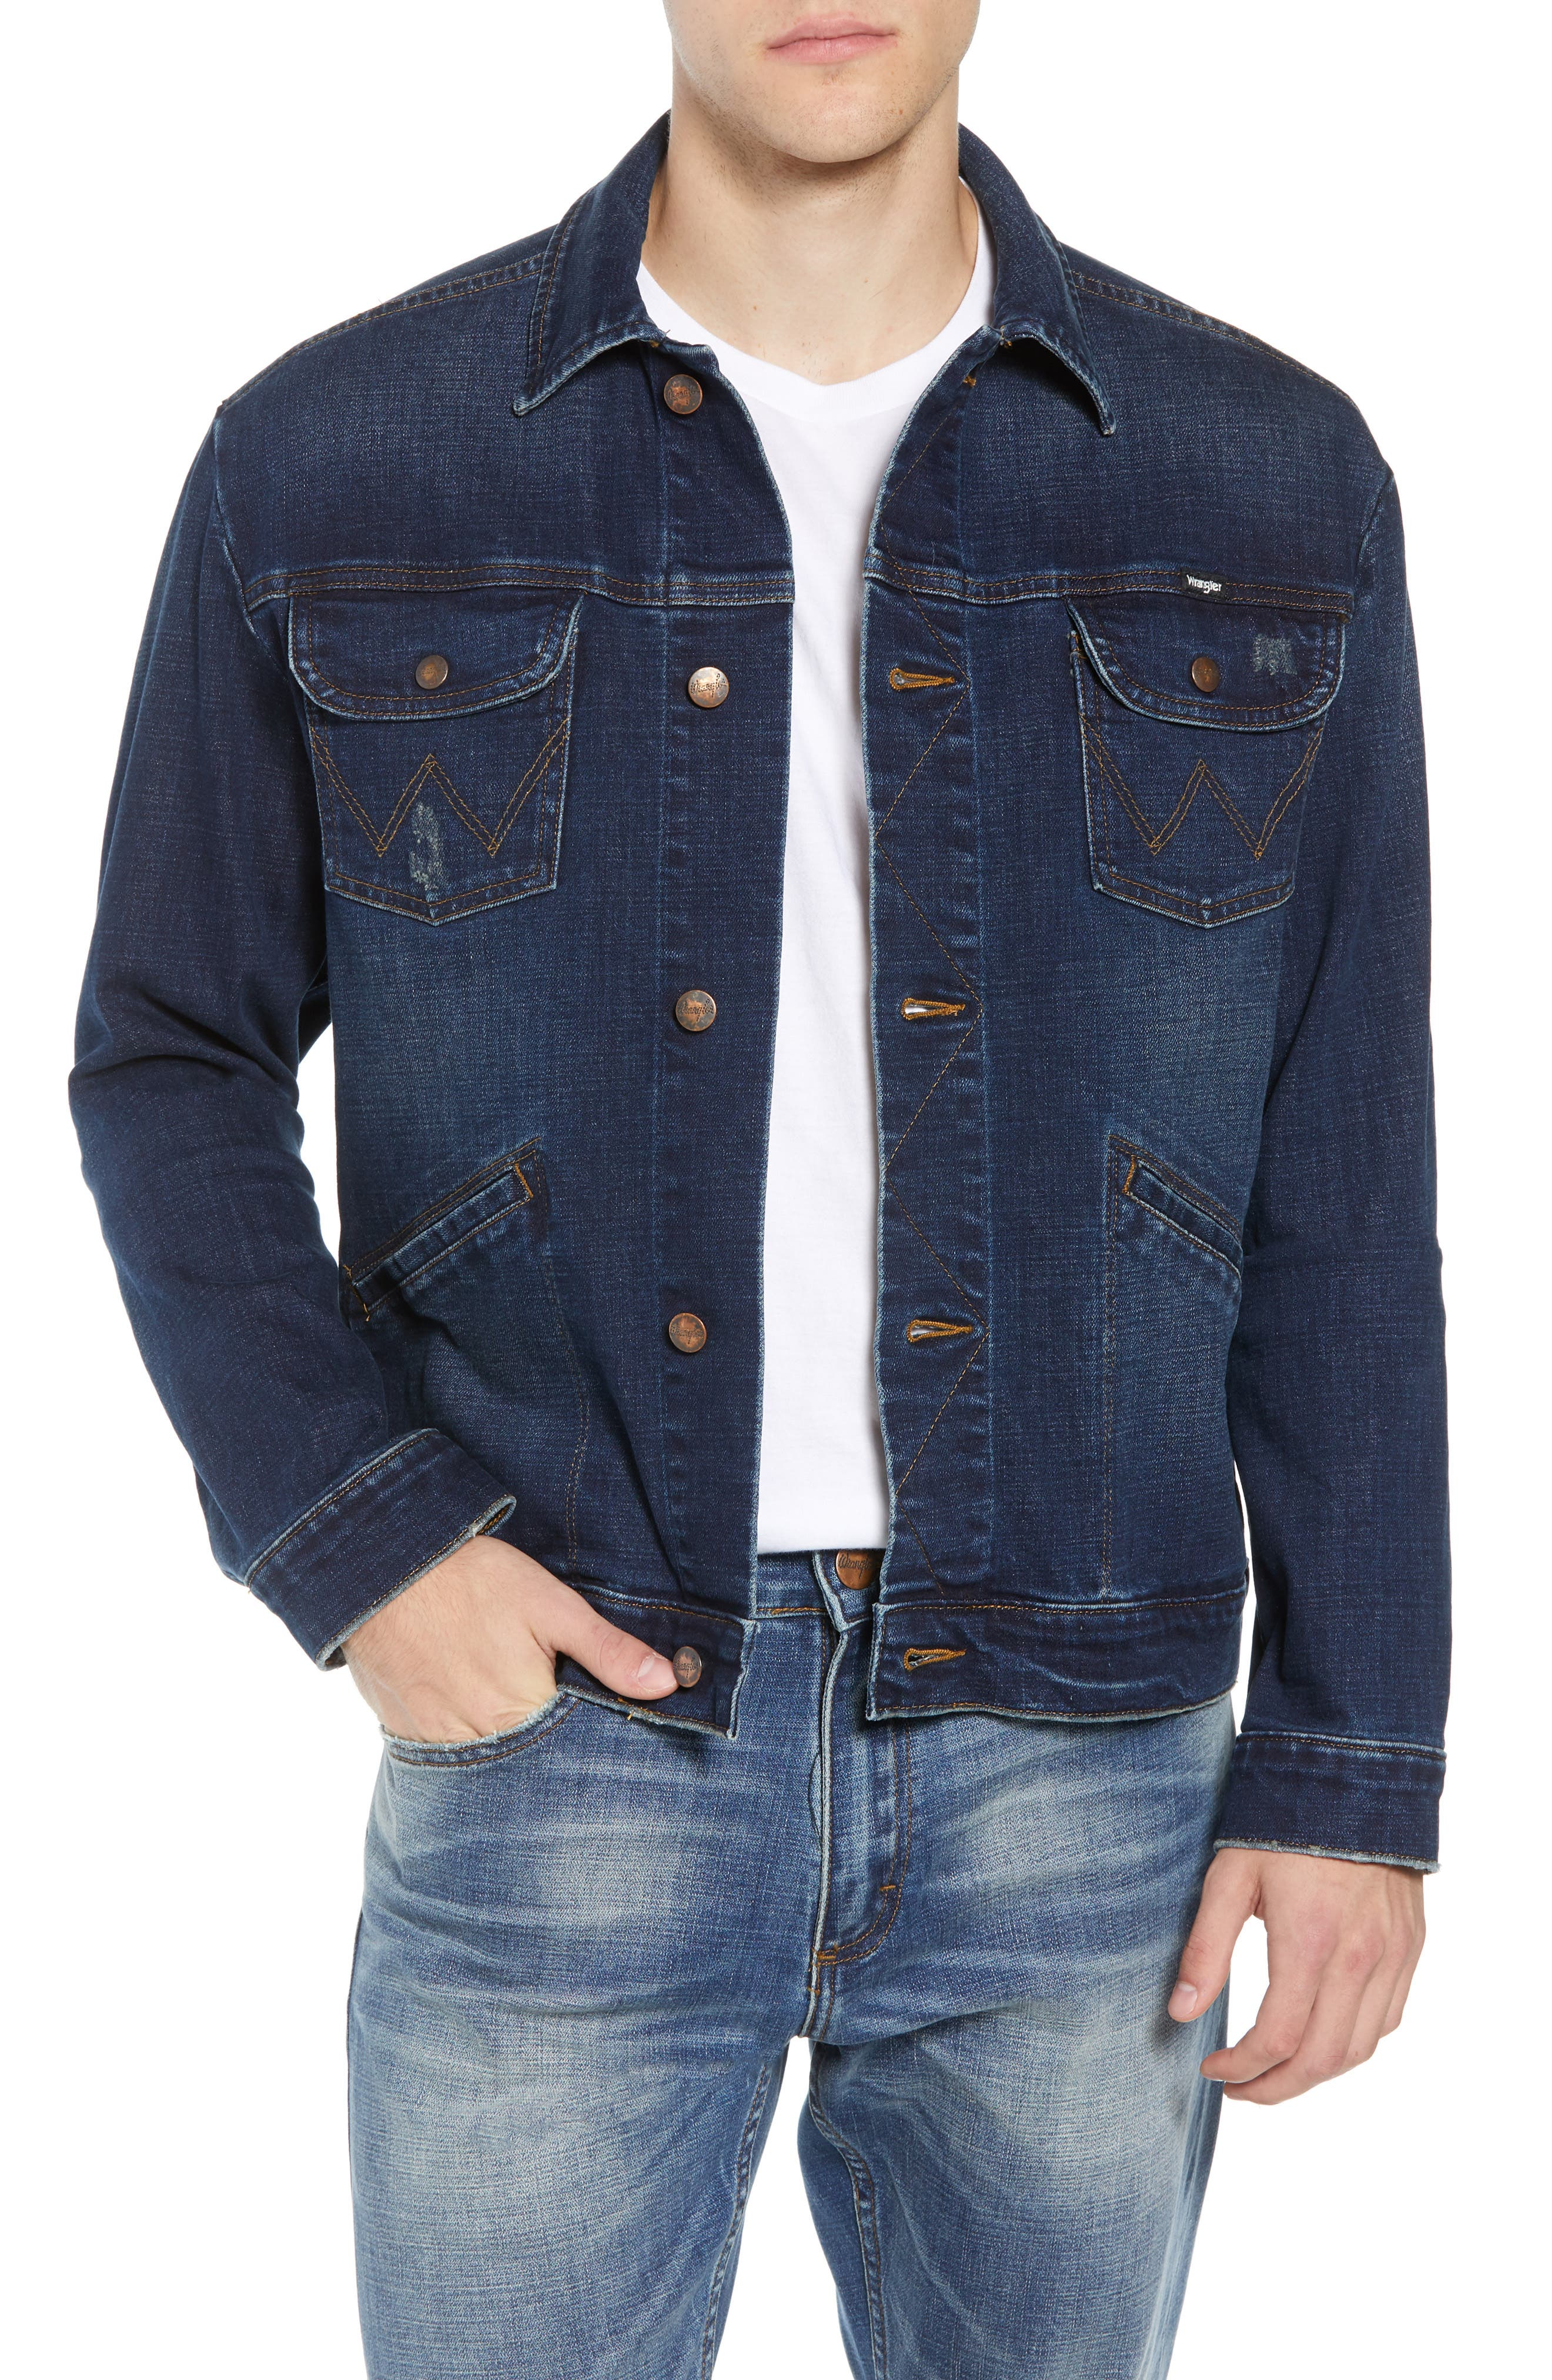 Heritage Denim Jacket,                         Main,                         color, DARK WASH